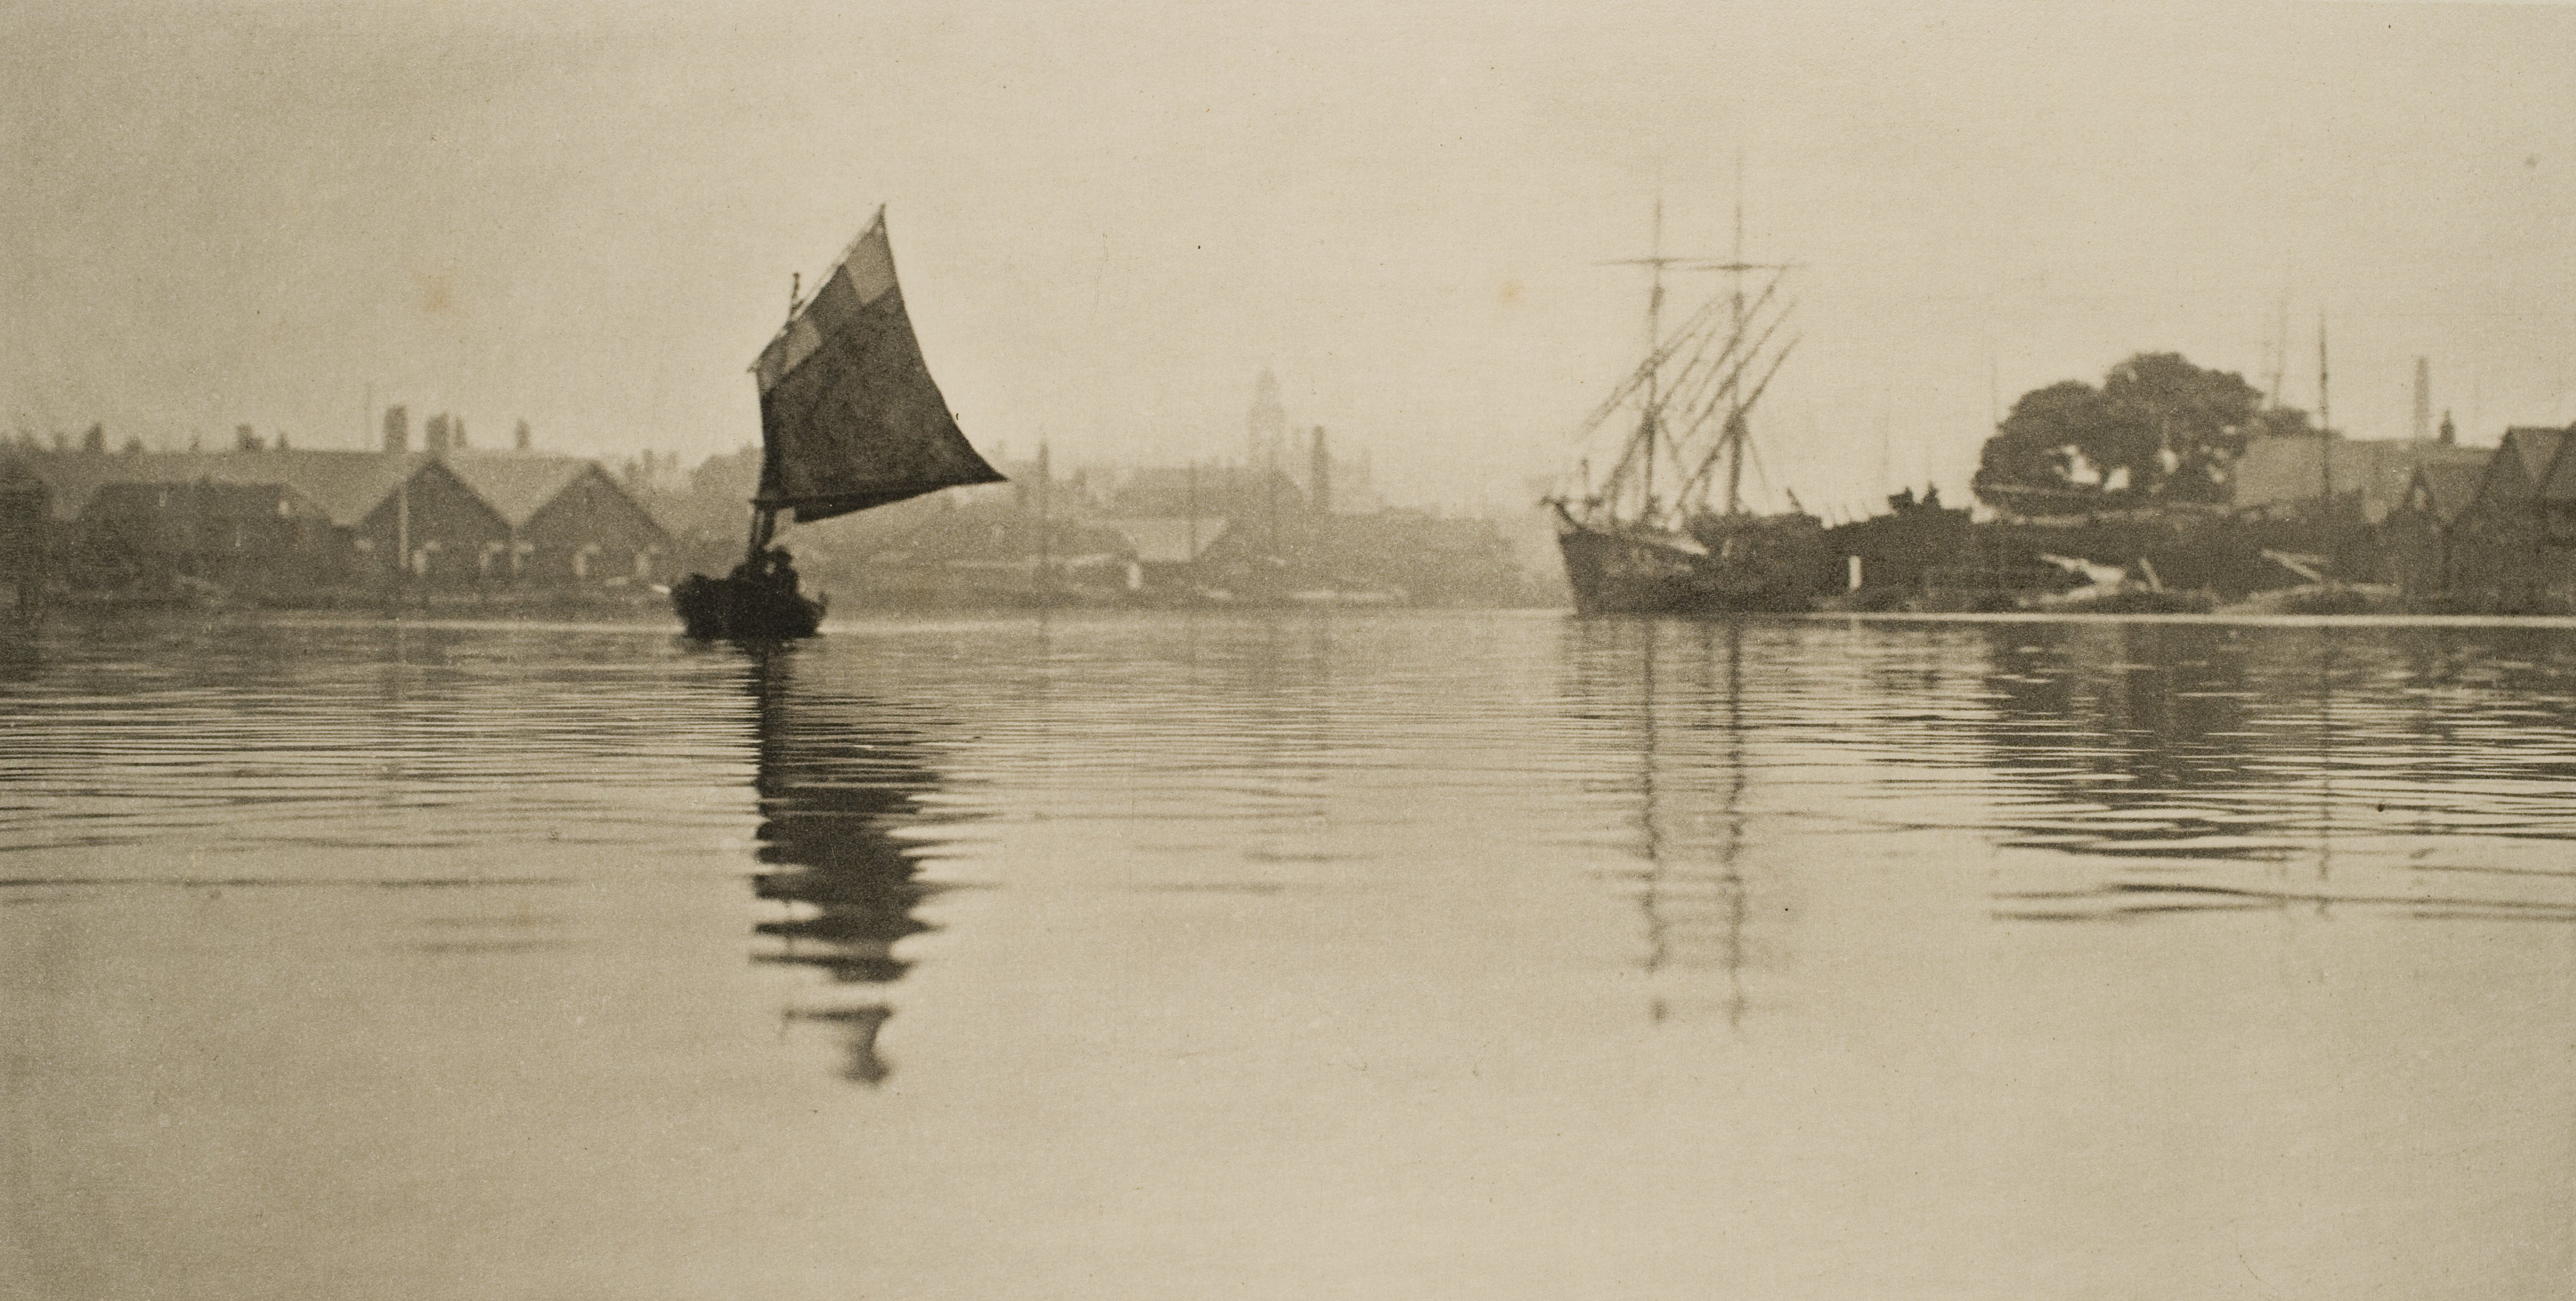 Ships on the flooded Yellow River in China, 1887.